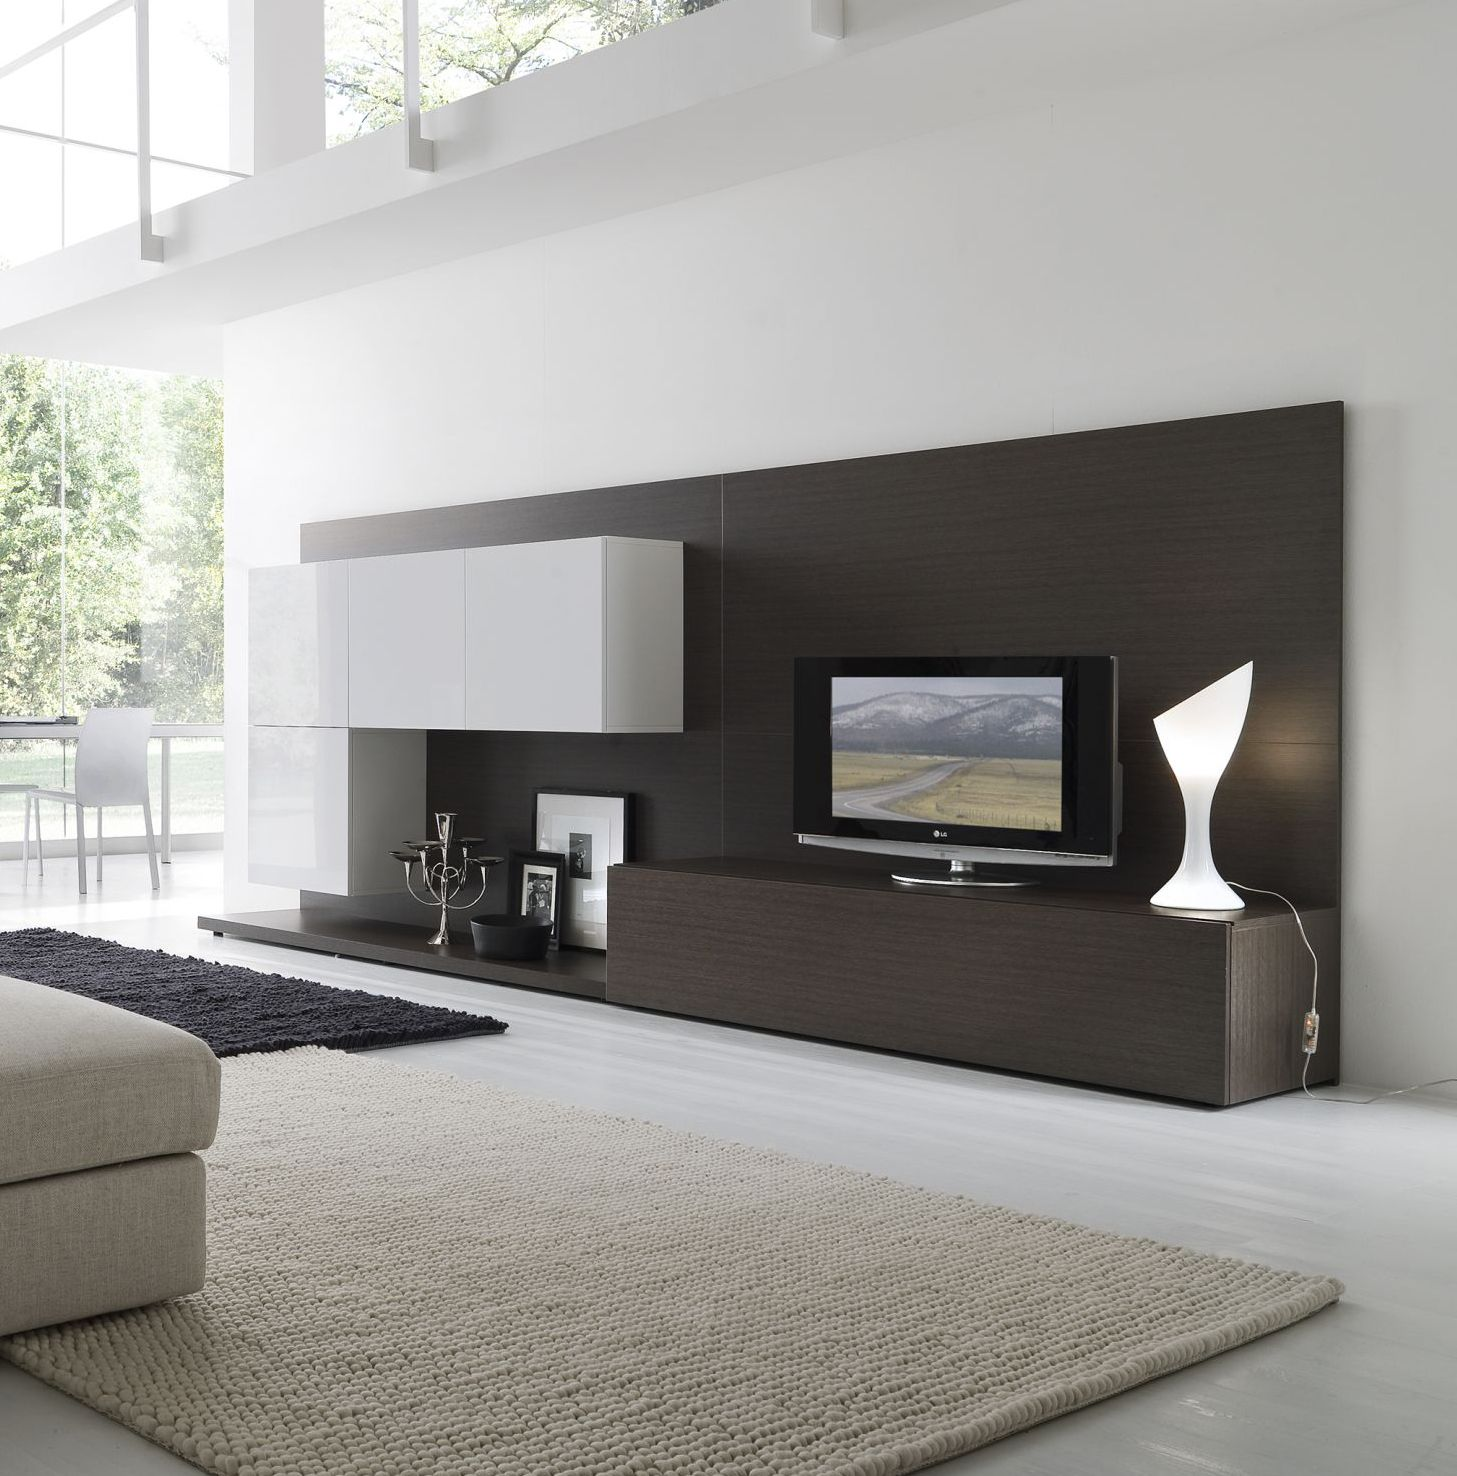 http://abnan/wp-content/uploads/2012/07/modern-living-room